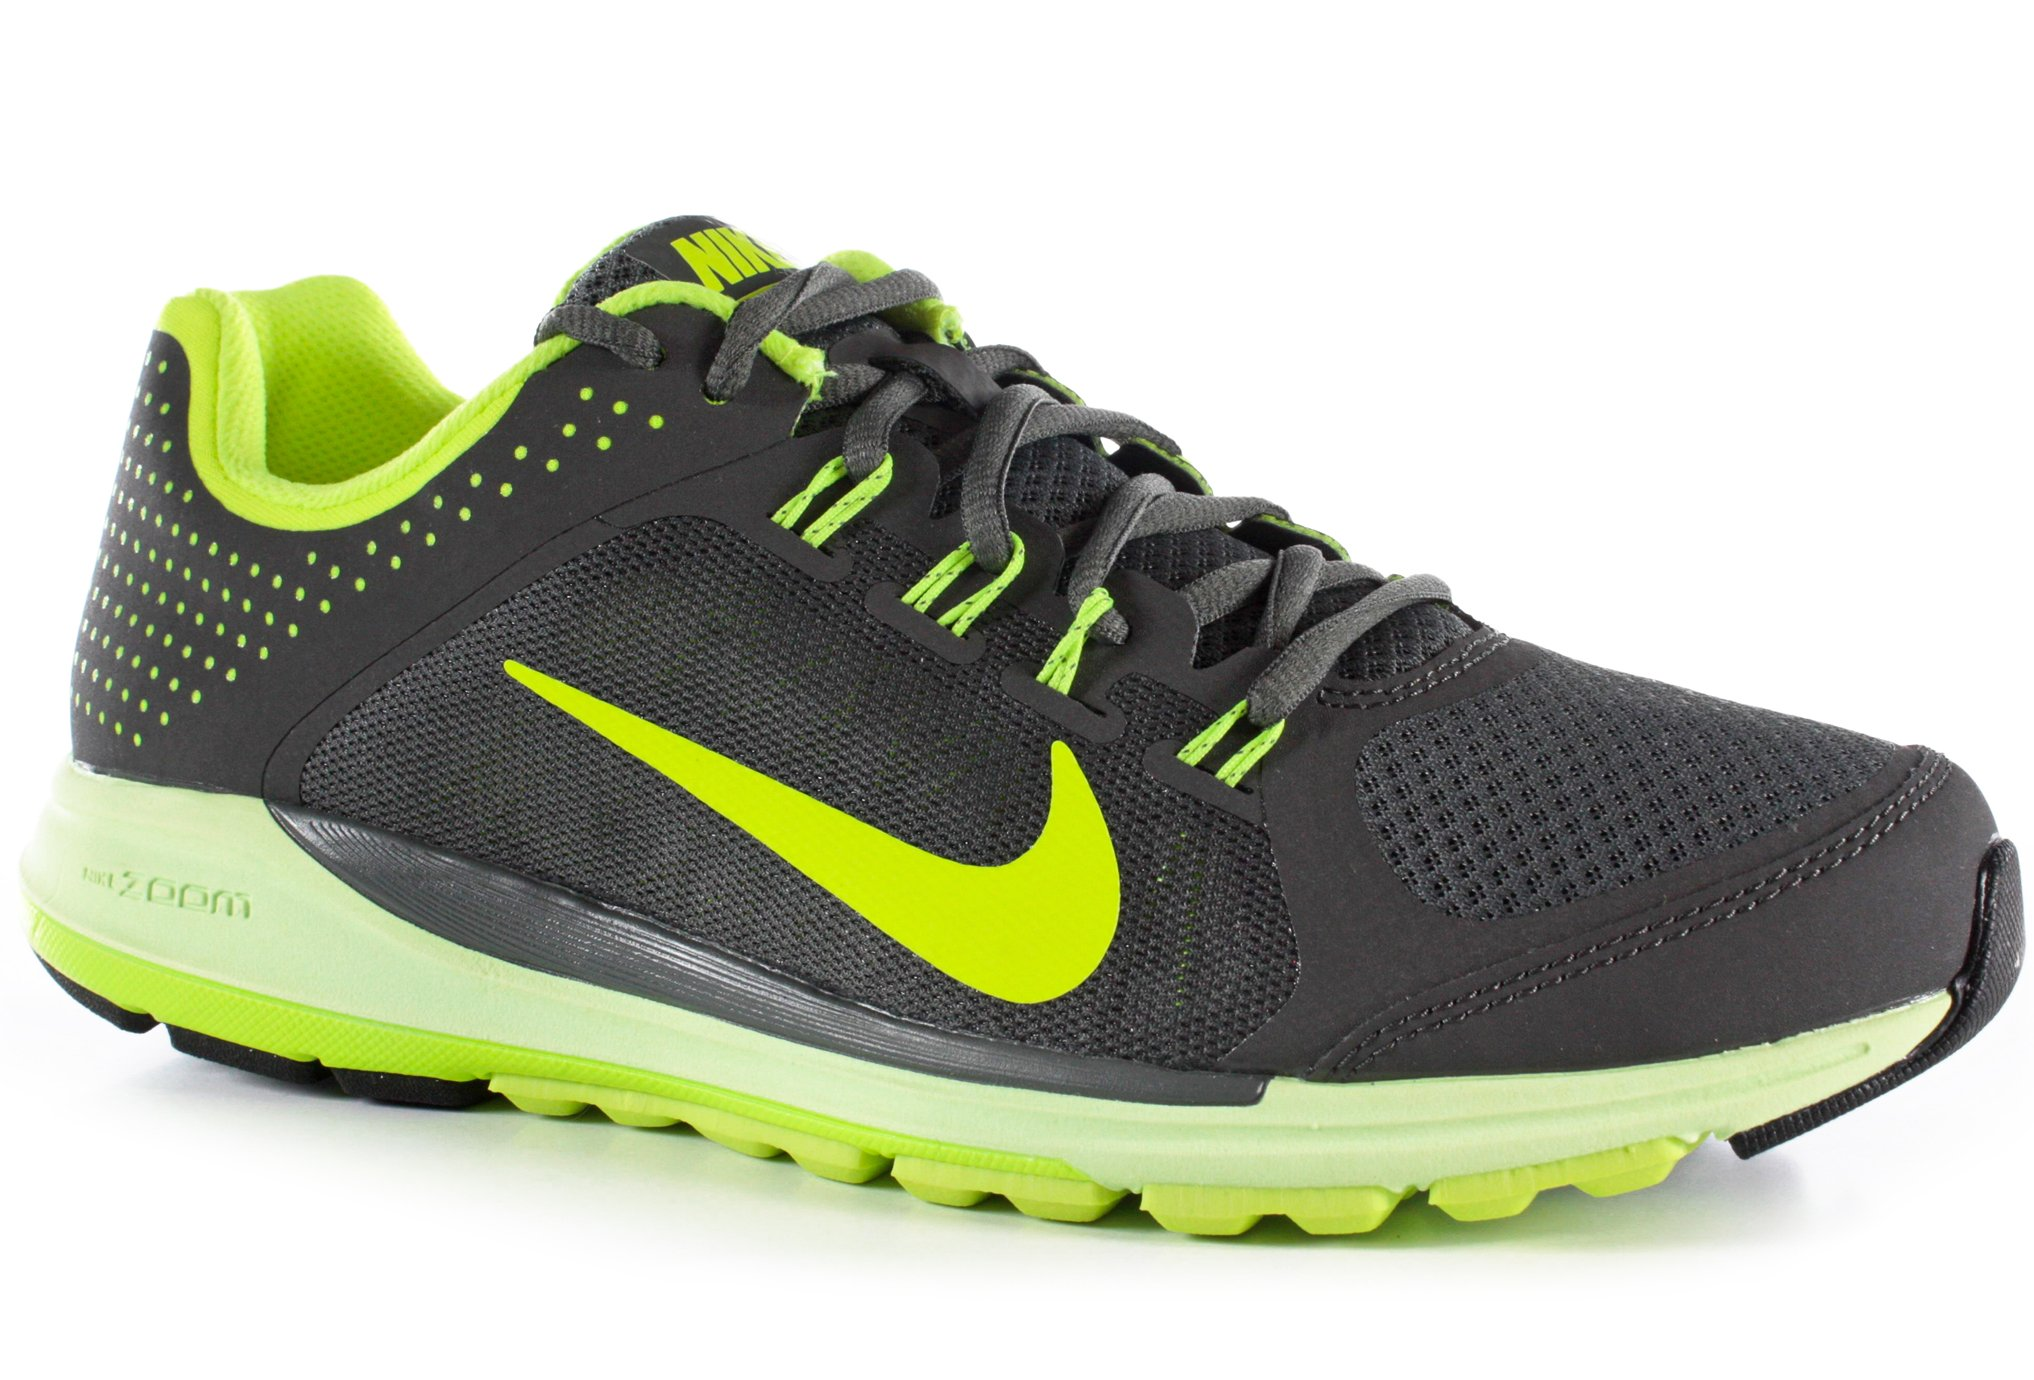 Nike Zoom Elite+ 6 M Di�t�tique Chaussures homme